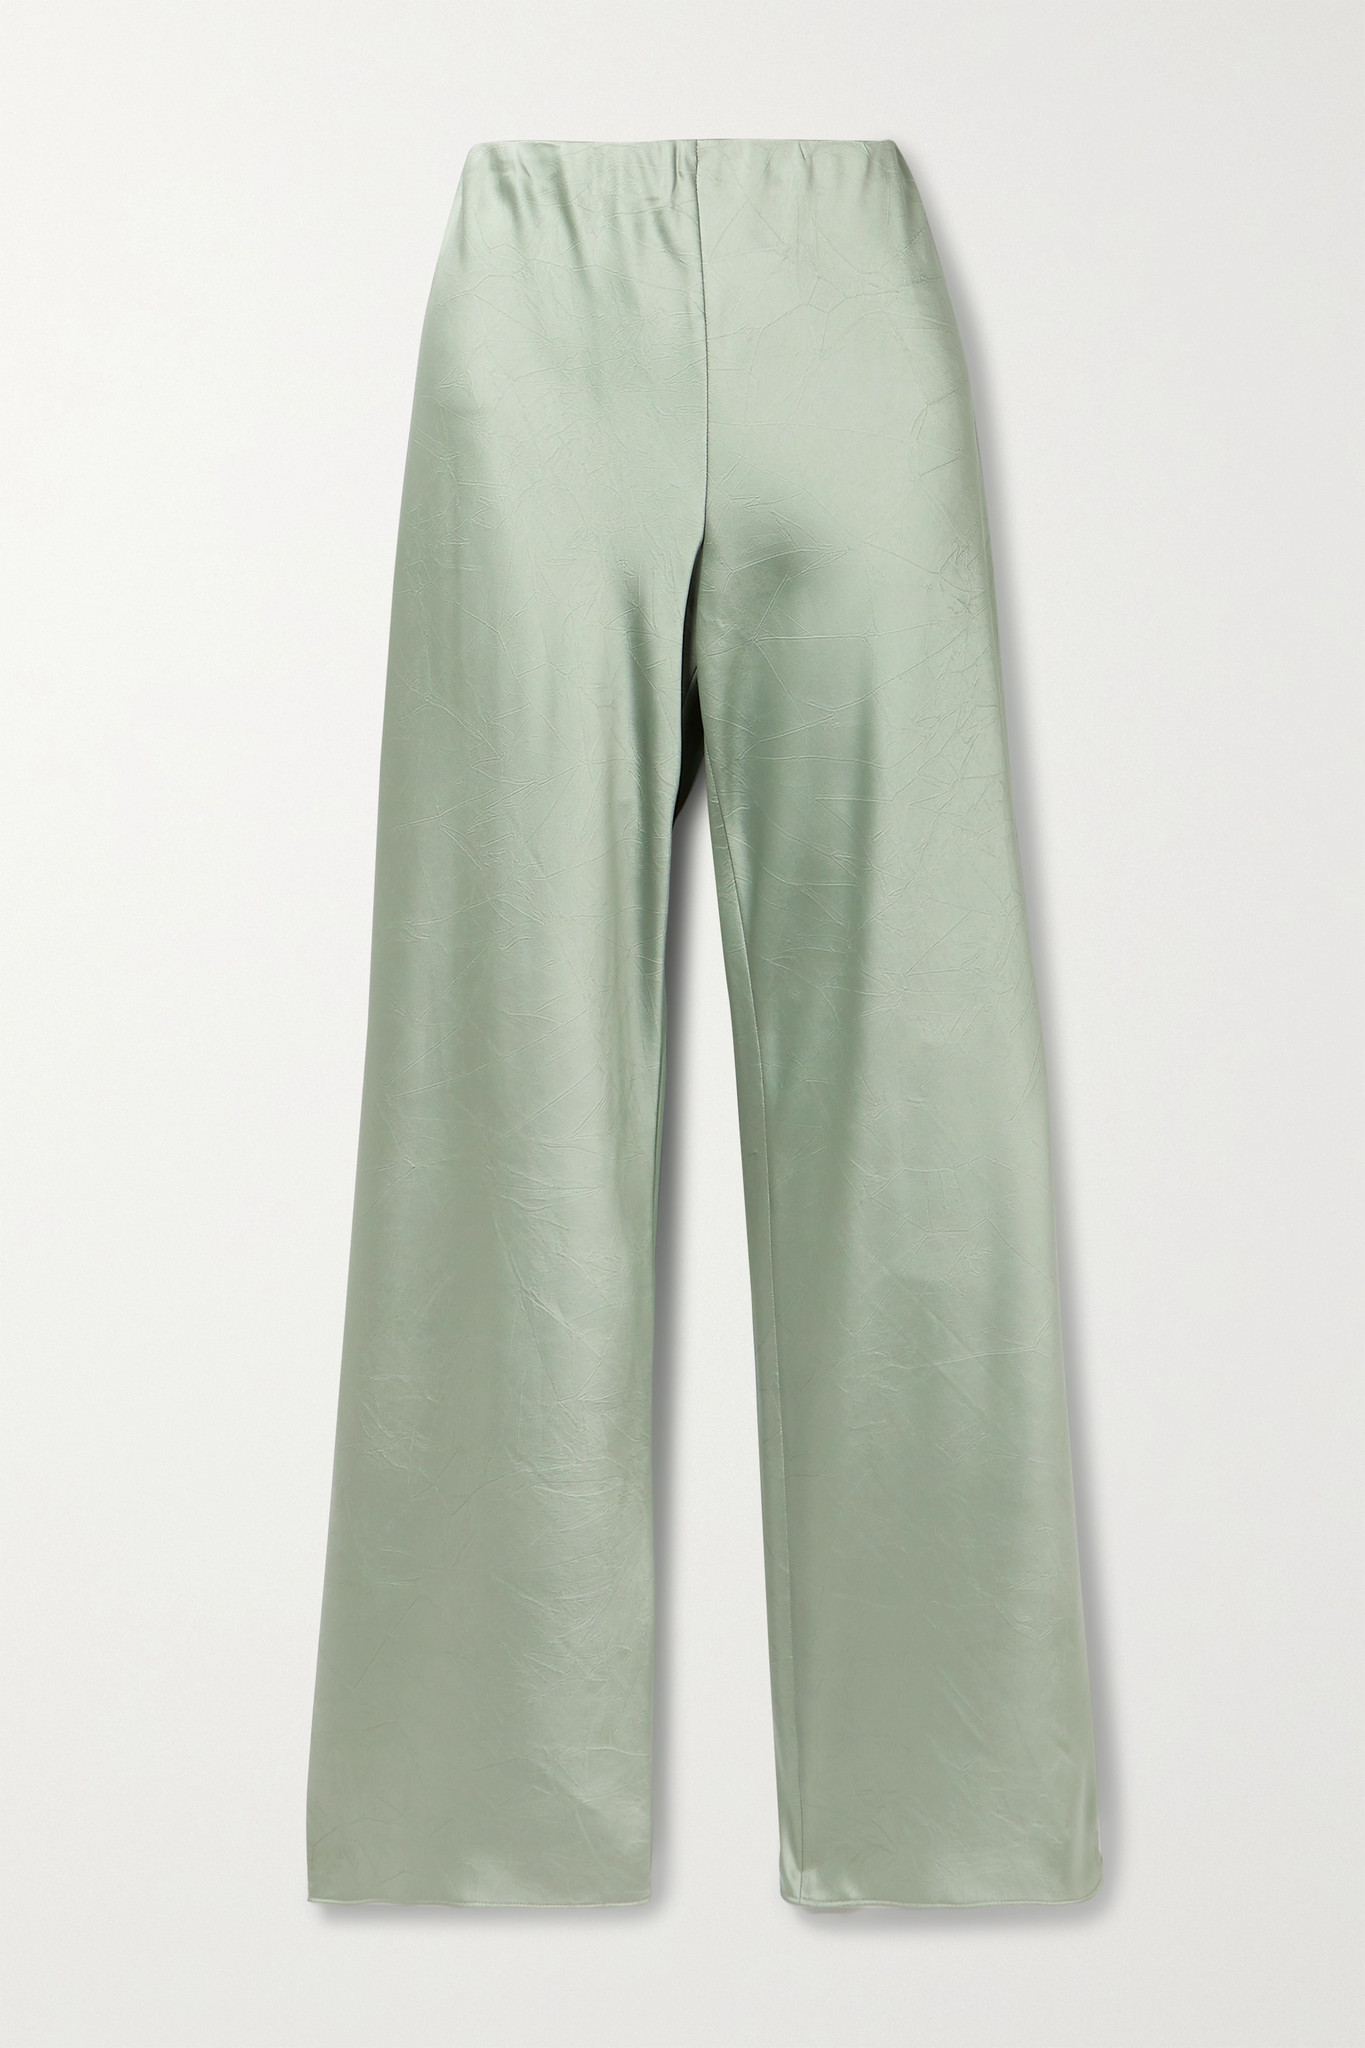 VINCE - Crinkled-satin Straight-leg Pants - Green - x small